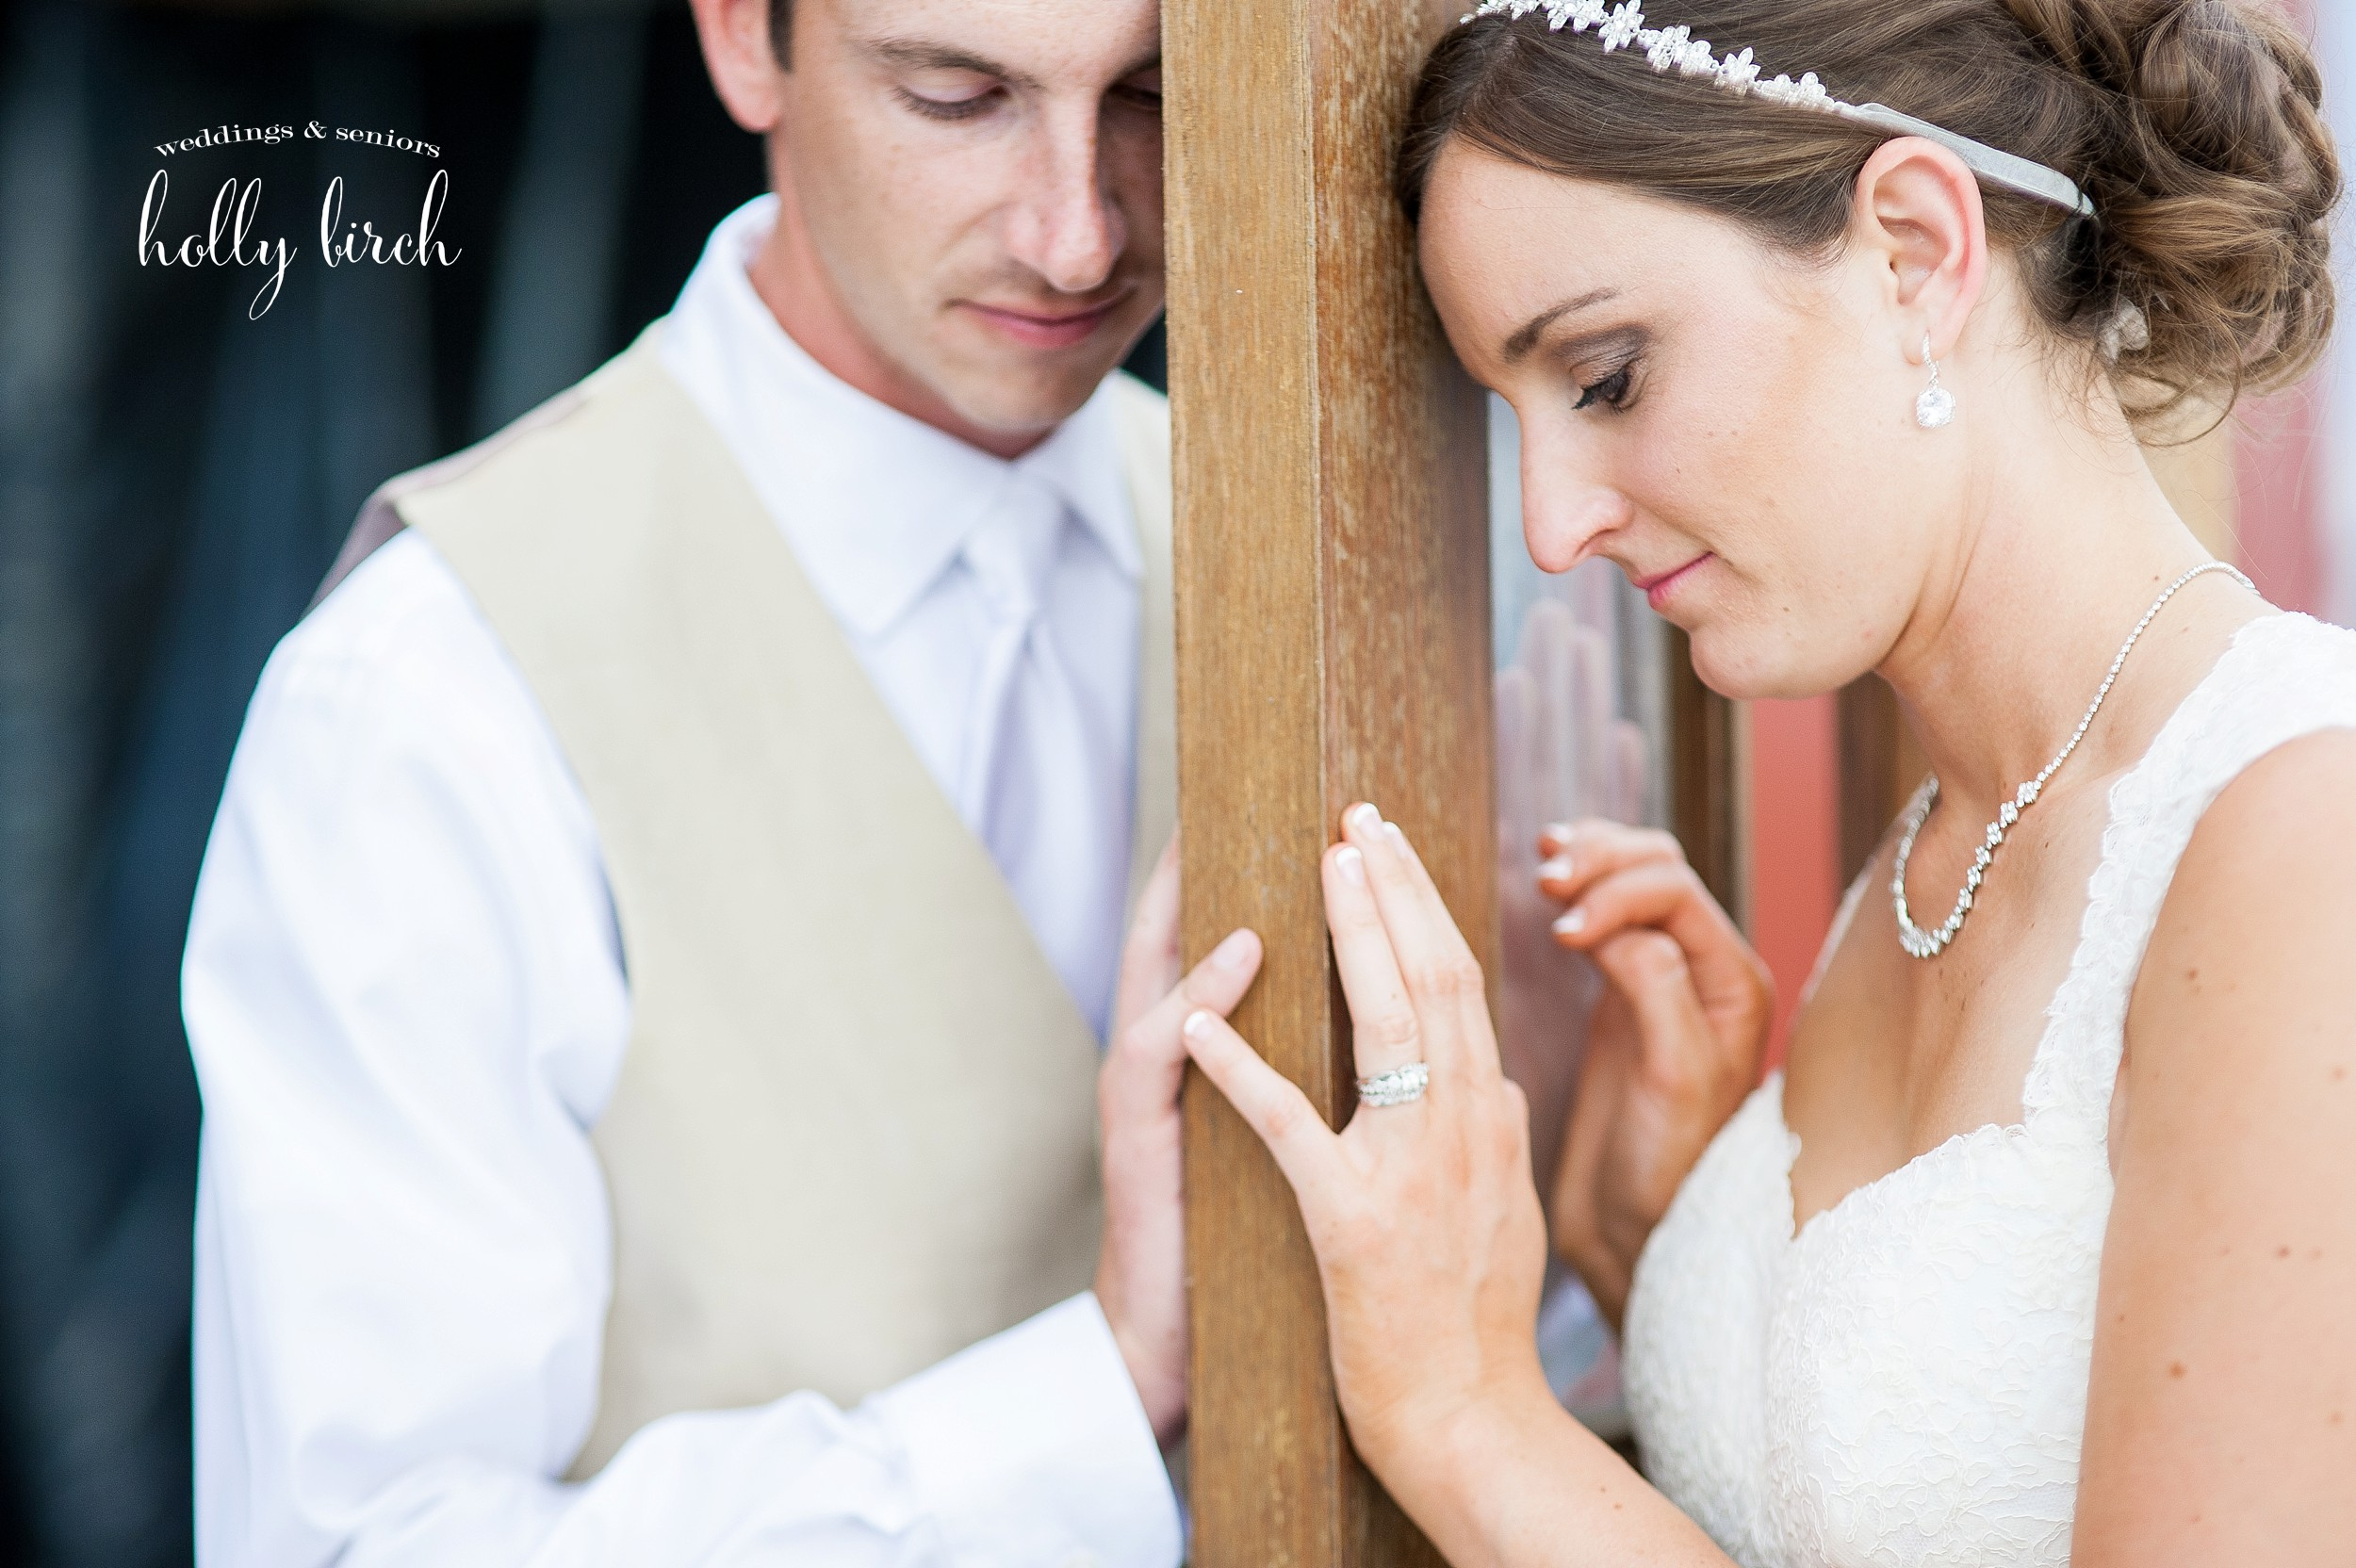 bride and groom on either side of wooden door